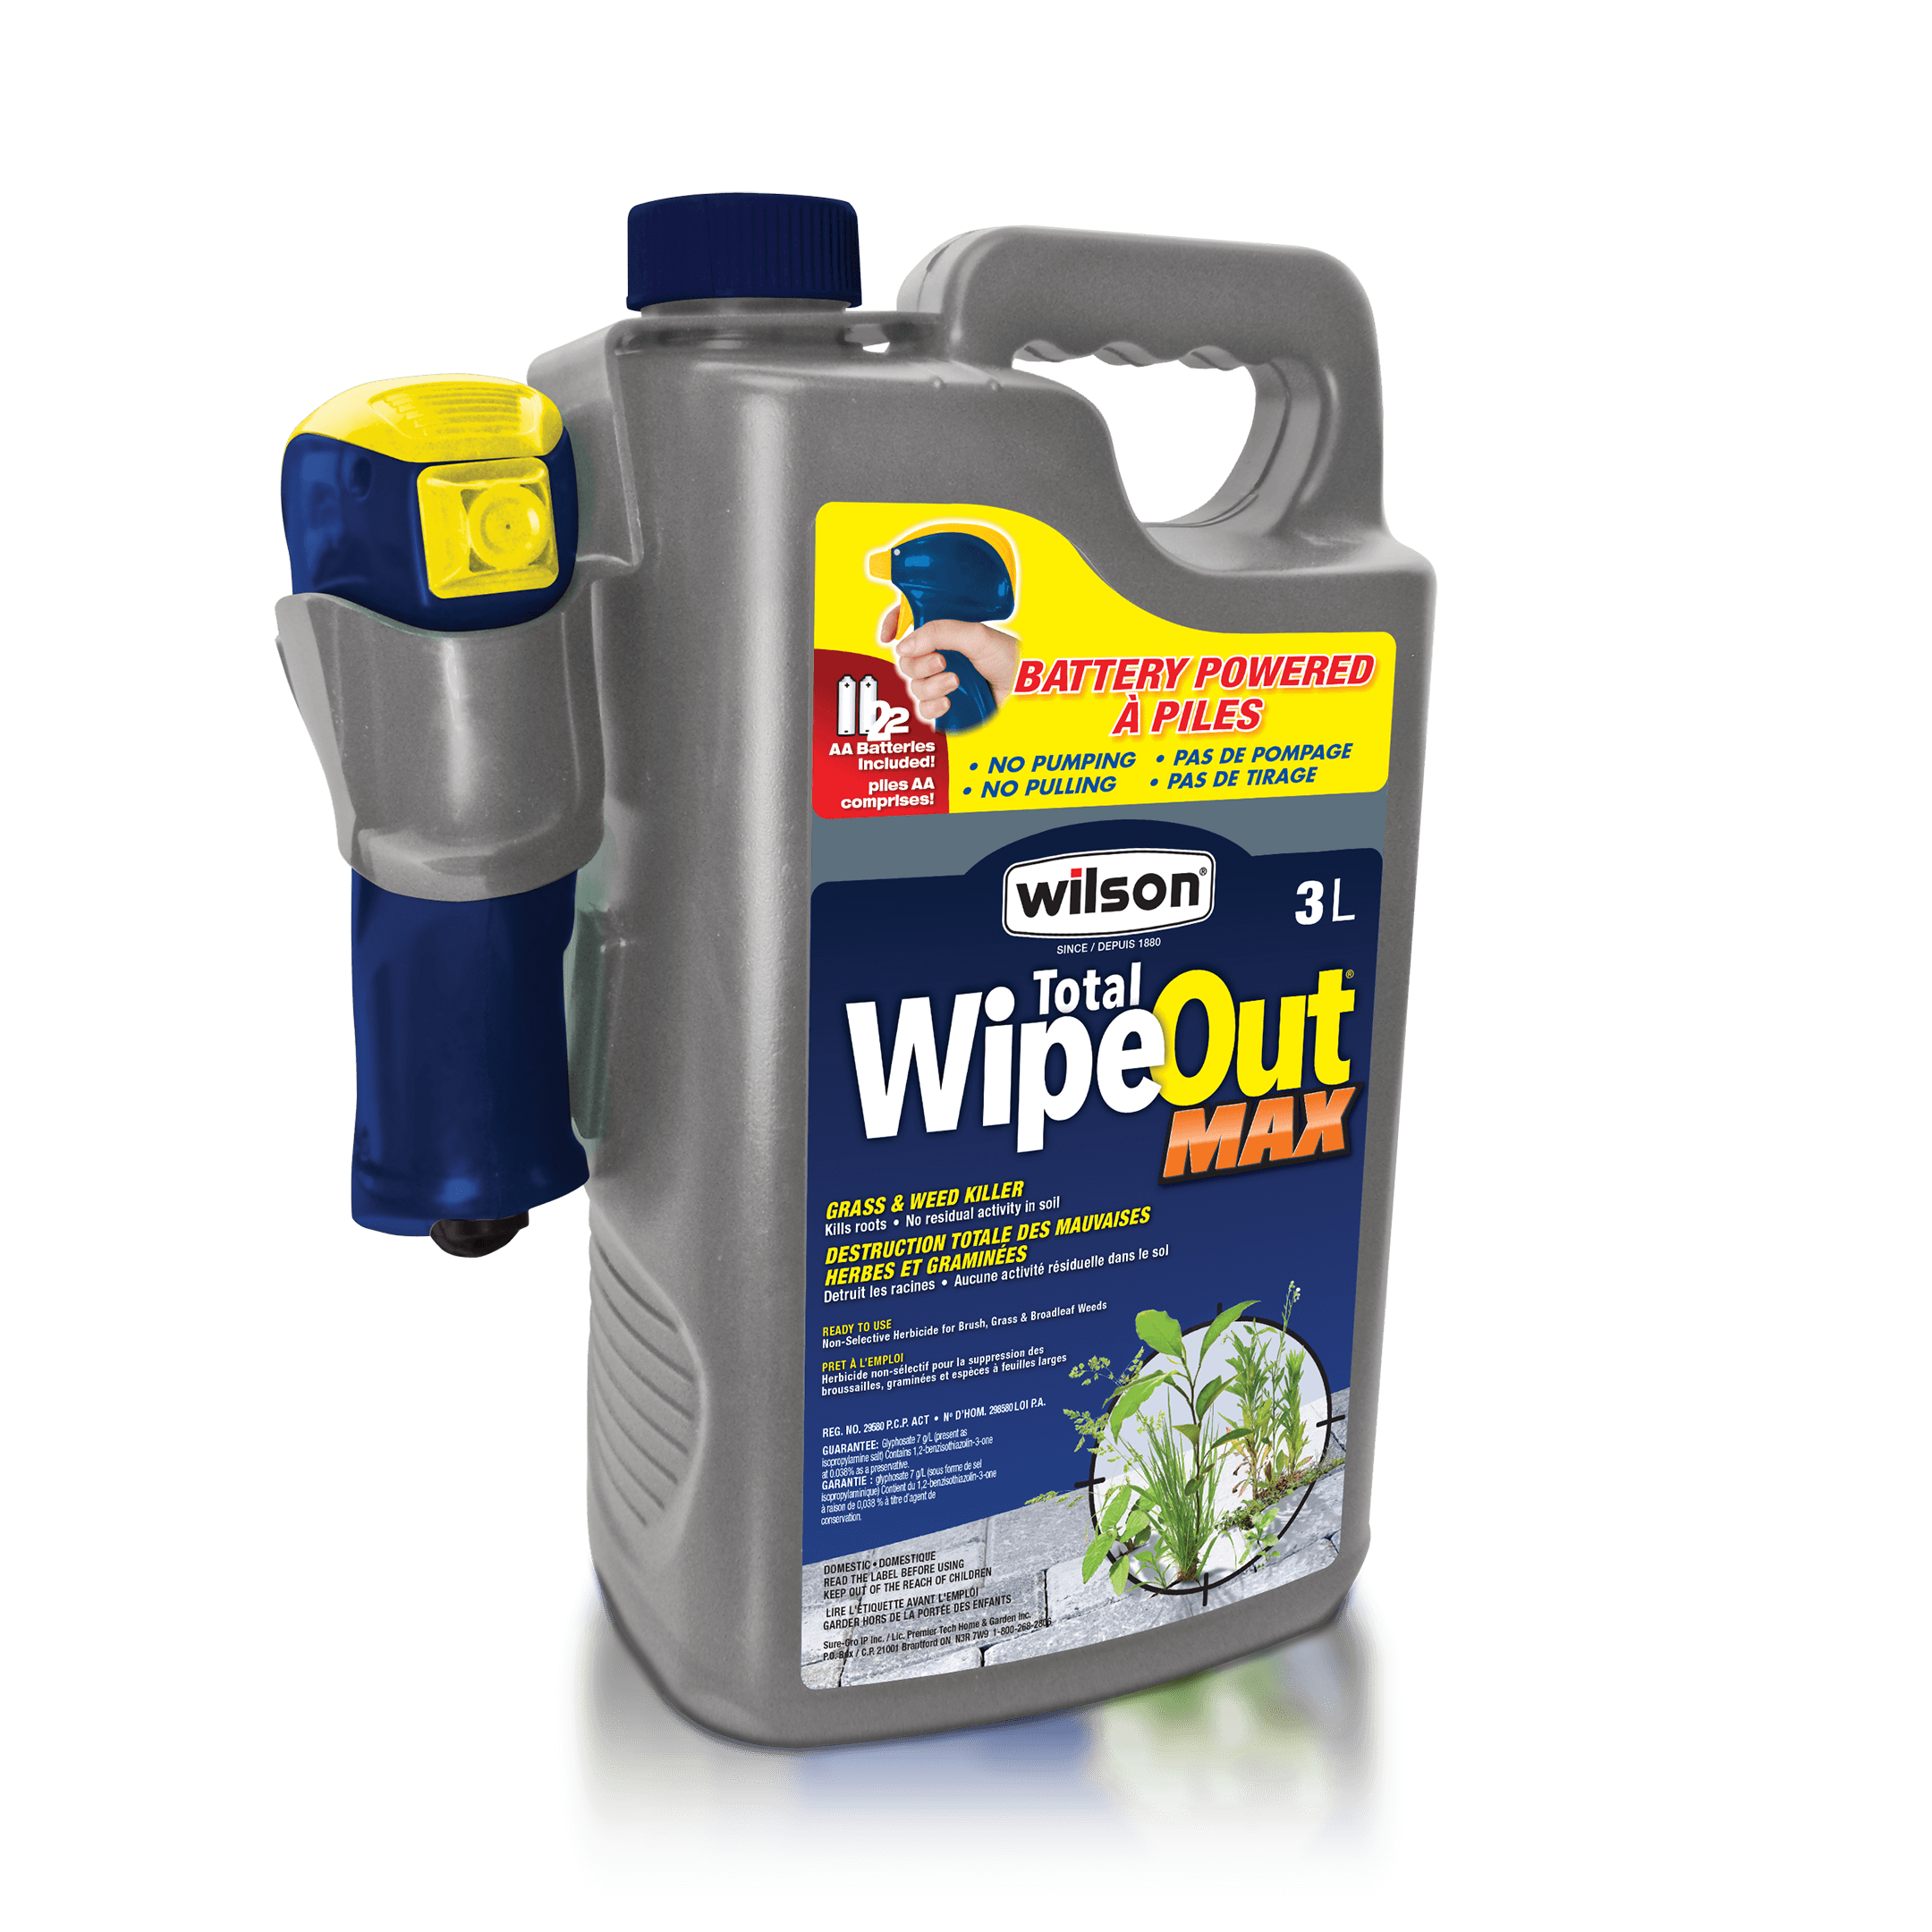 Total WipeOut® Max Battery powered